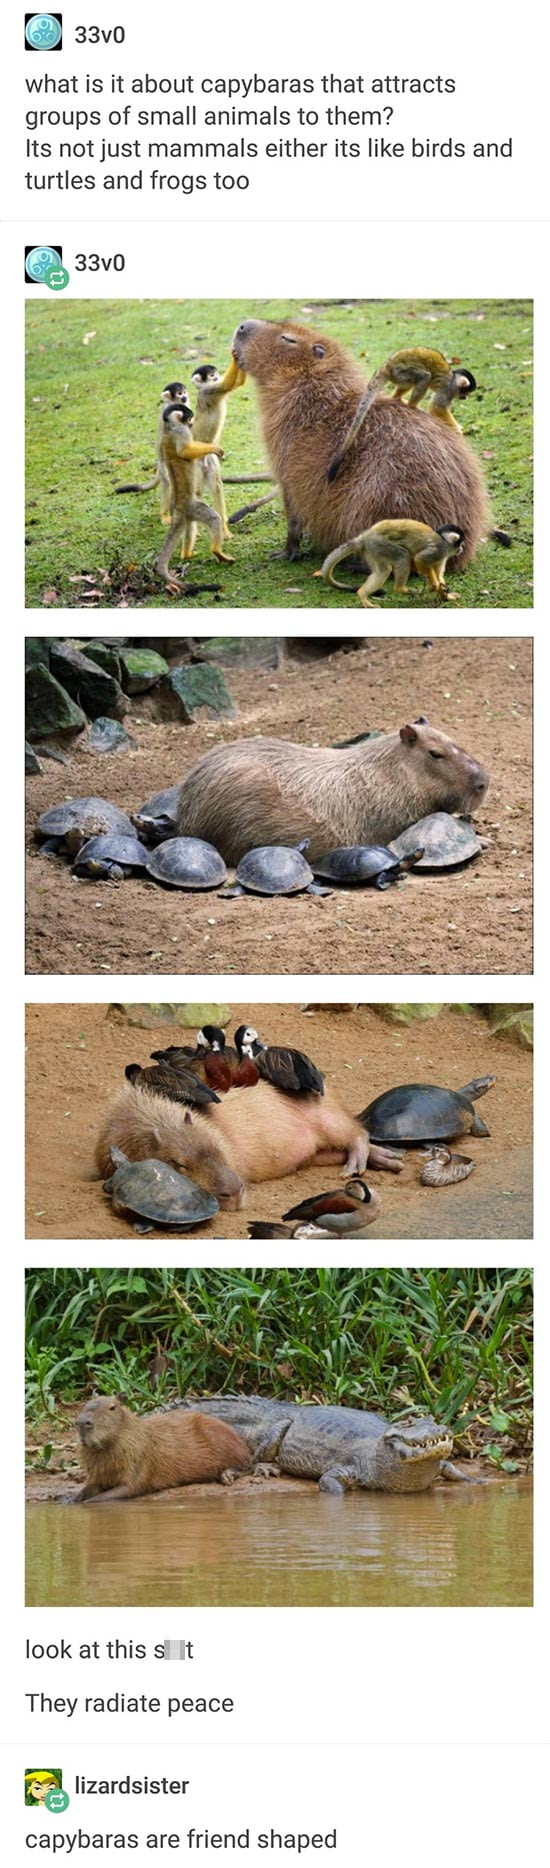 wat is it about capybaras that attracts groups of small animals to them?, its not just mammals either its like birds and turtles and frogs too, they radiate peace, capybaras are friend shaped